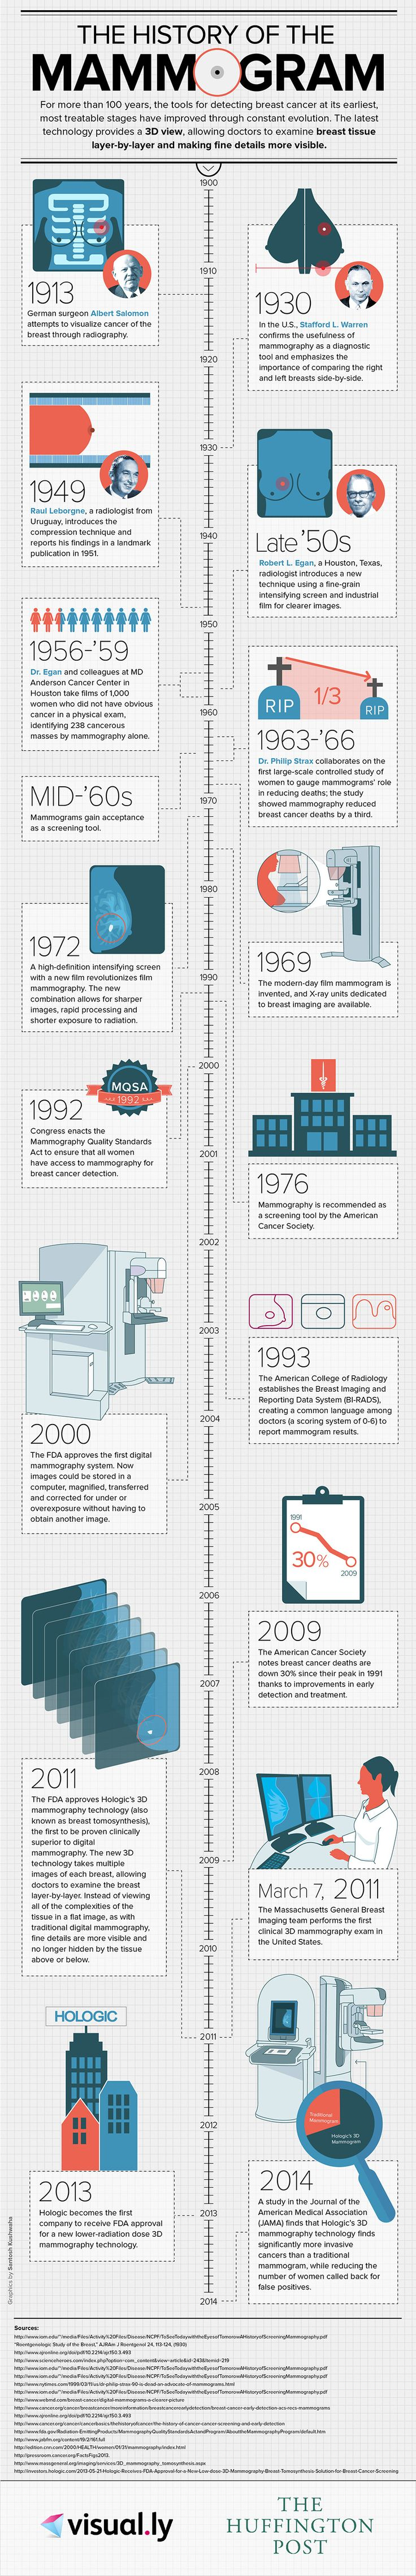 The History Of The Mammogram [INFOGRAPHIC]